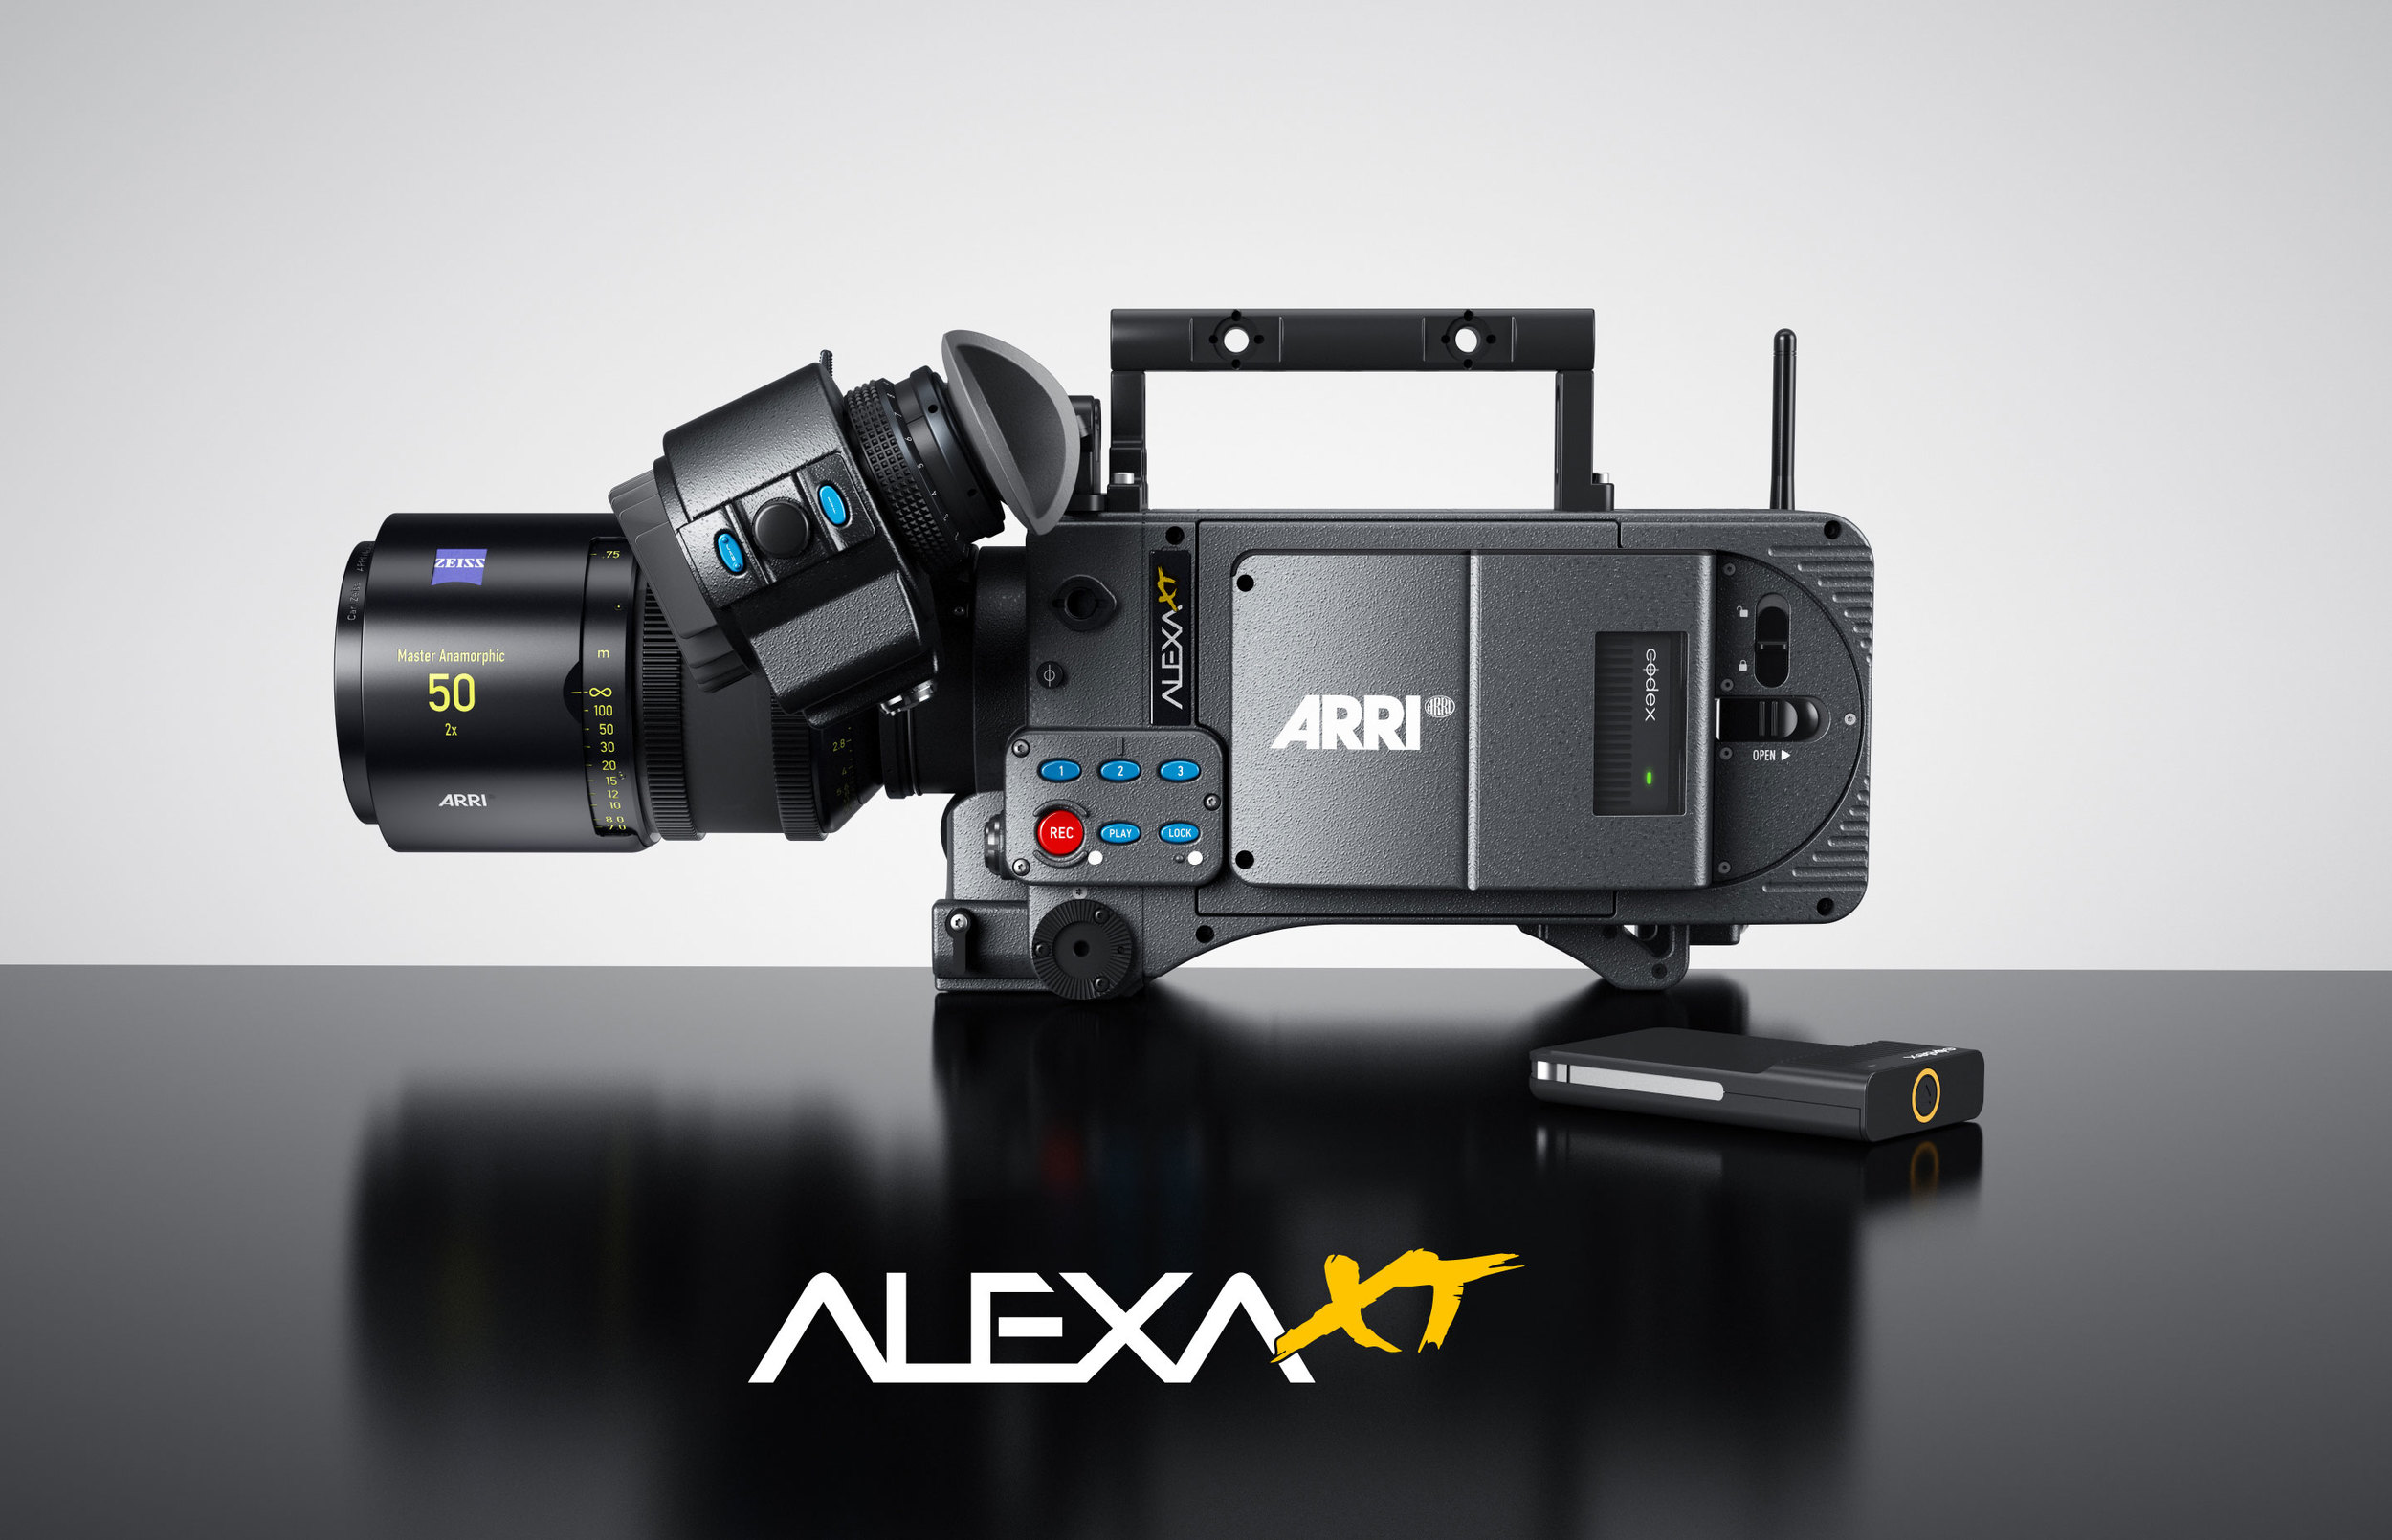 ALEXA XT now with Arri's 9th software update.